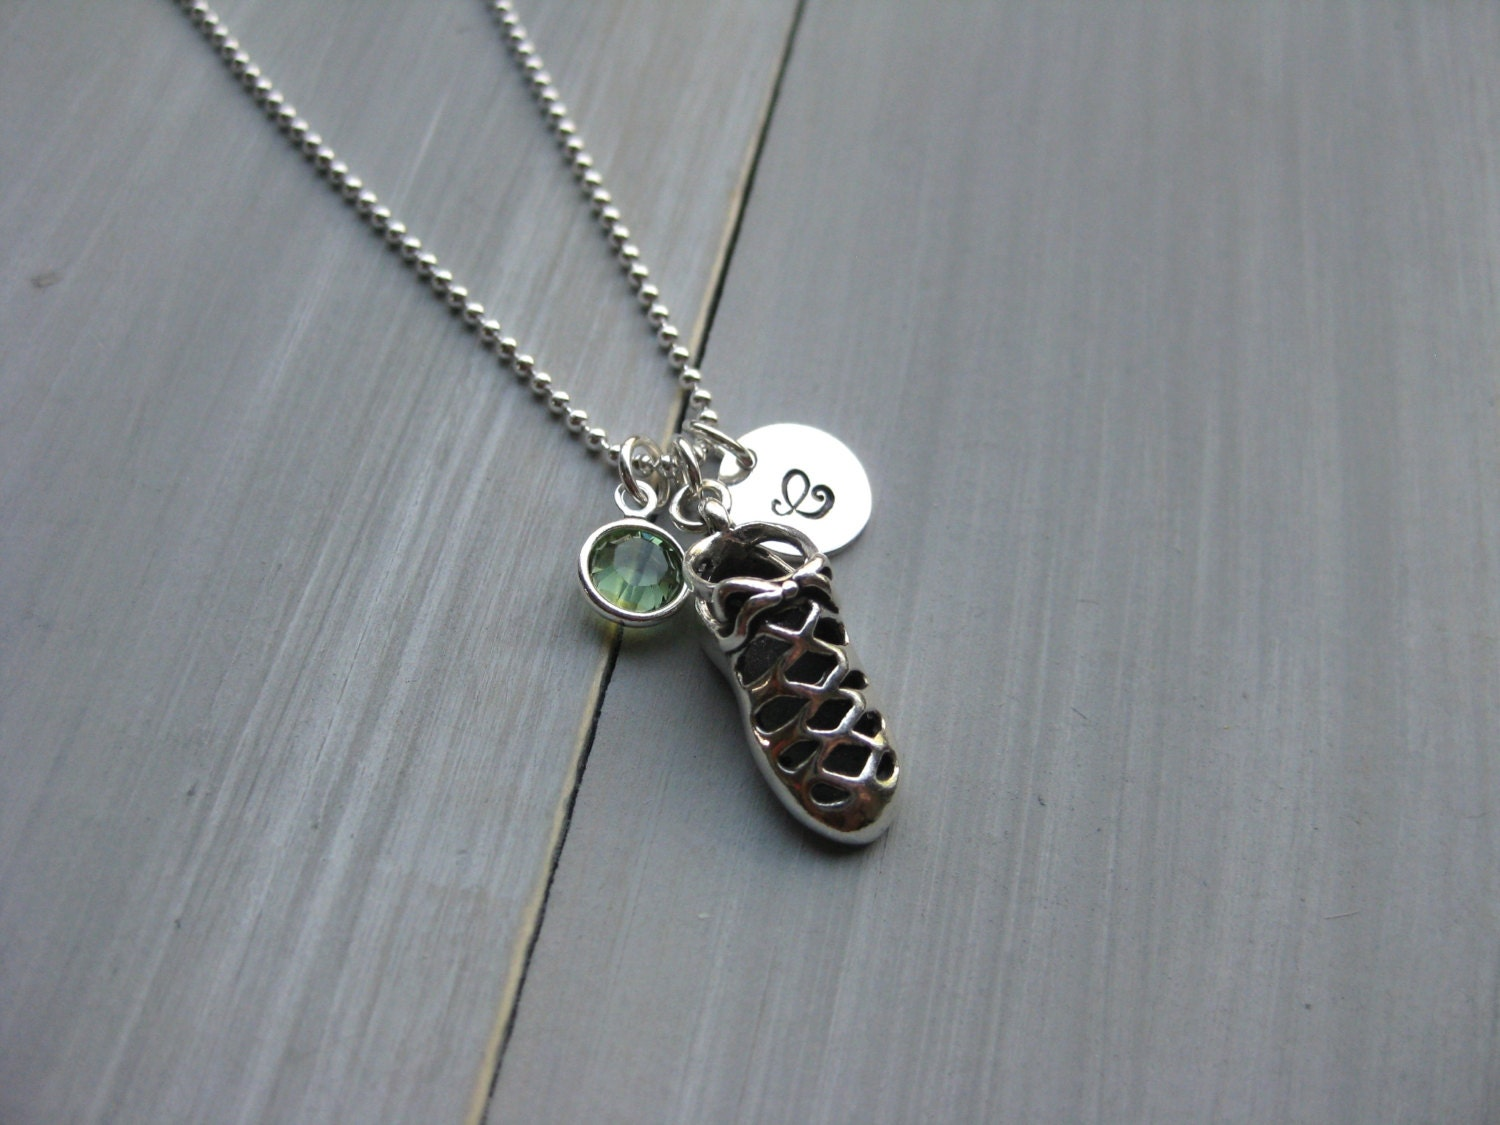 Irish dance necklace celtic jewelry personalized necklace hand for Same day jewelry repair